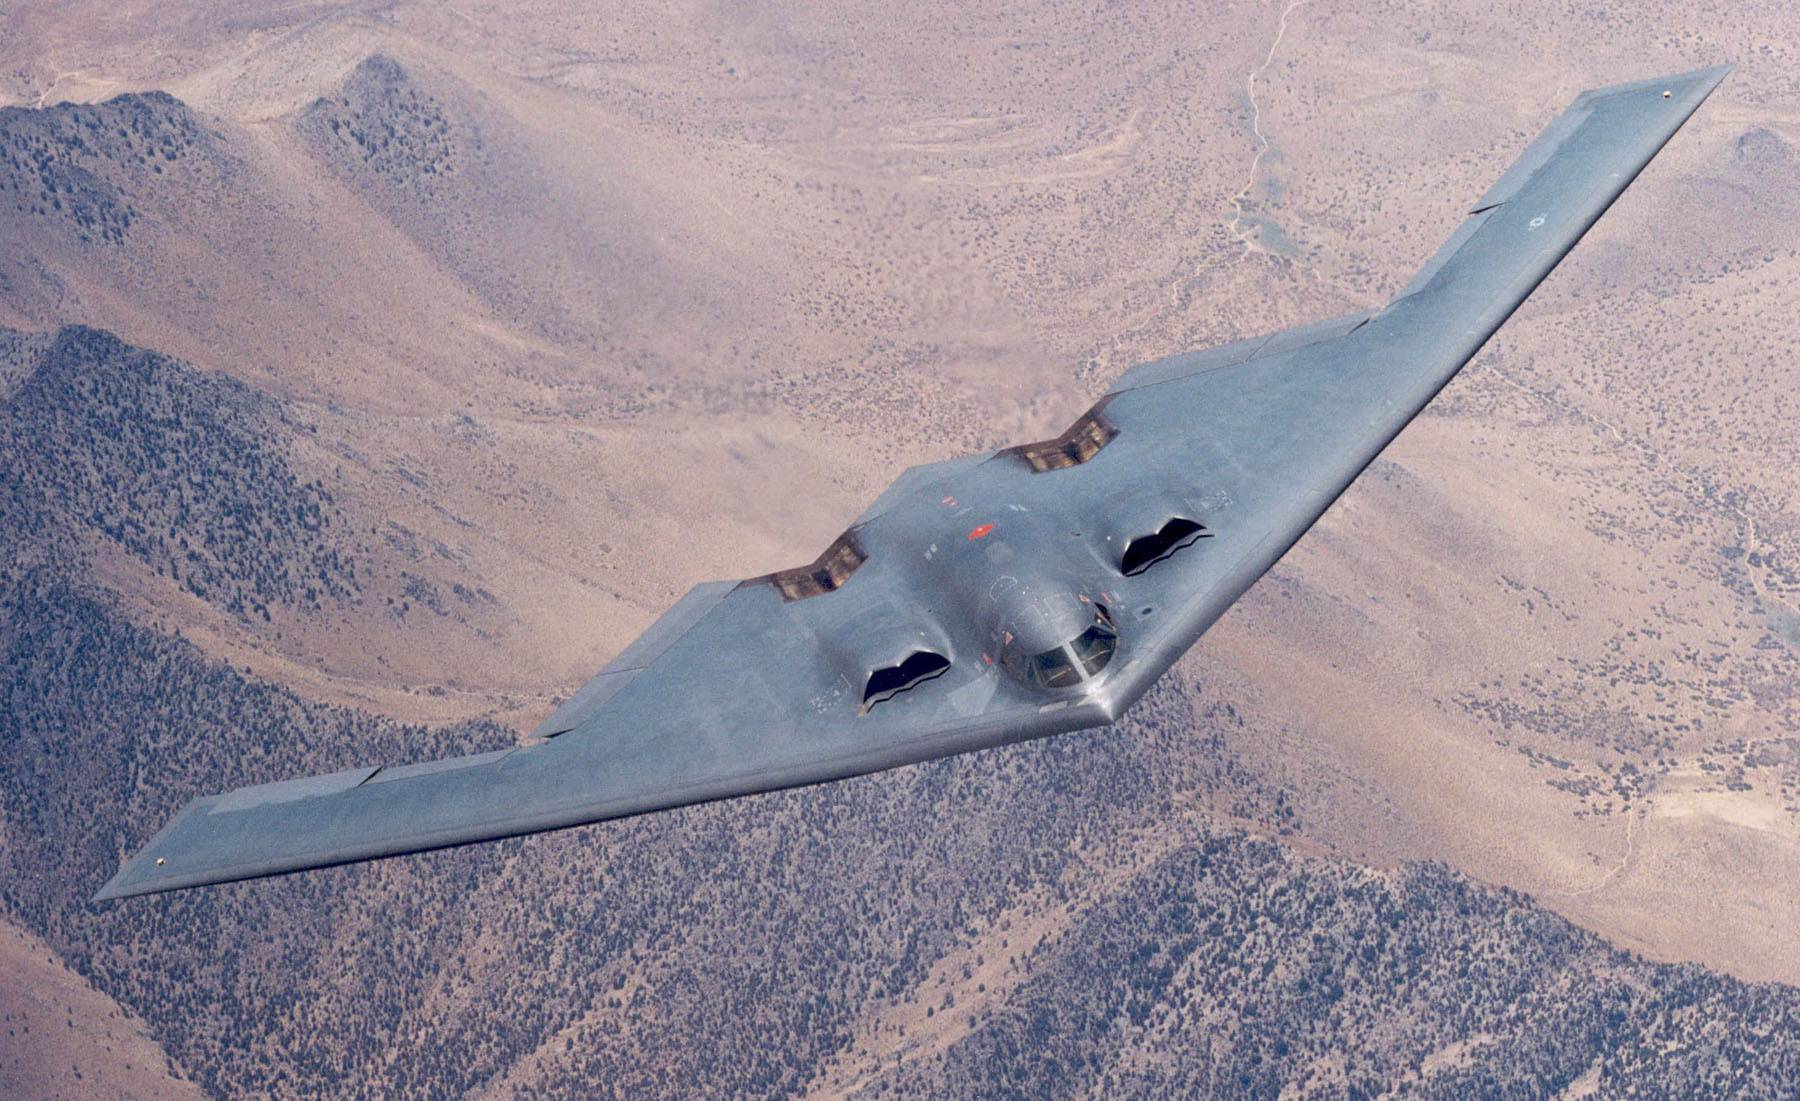 Aircraft military stealth bomber planes b 2 spirit wallpaper HQ 1800x1101